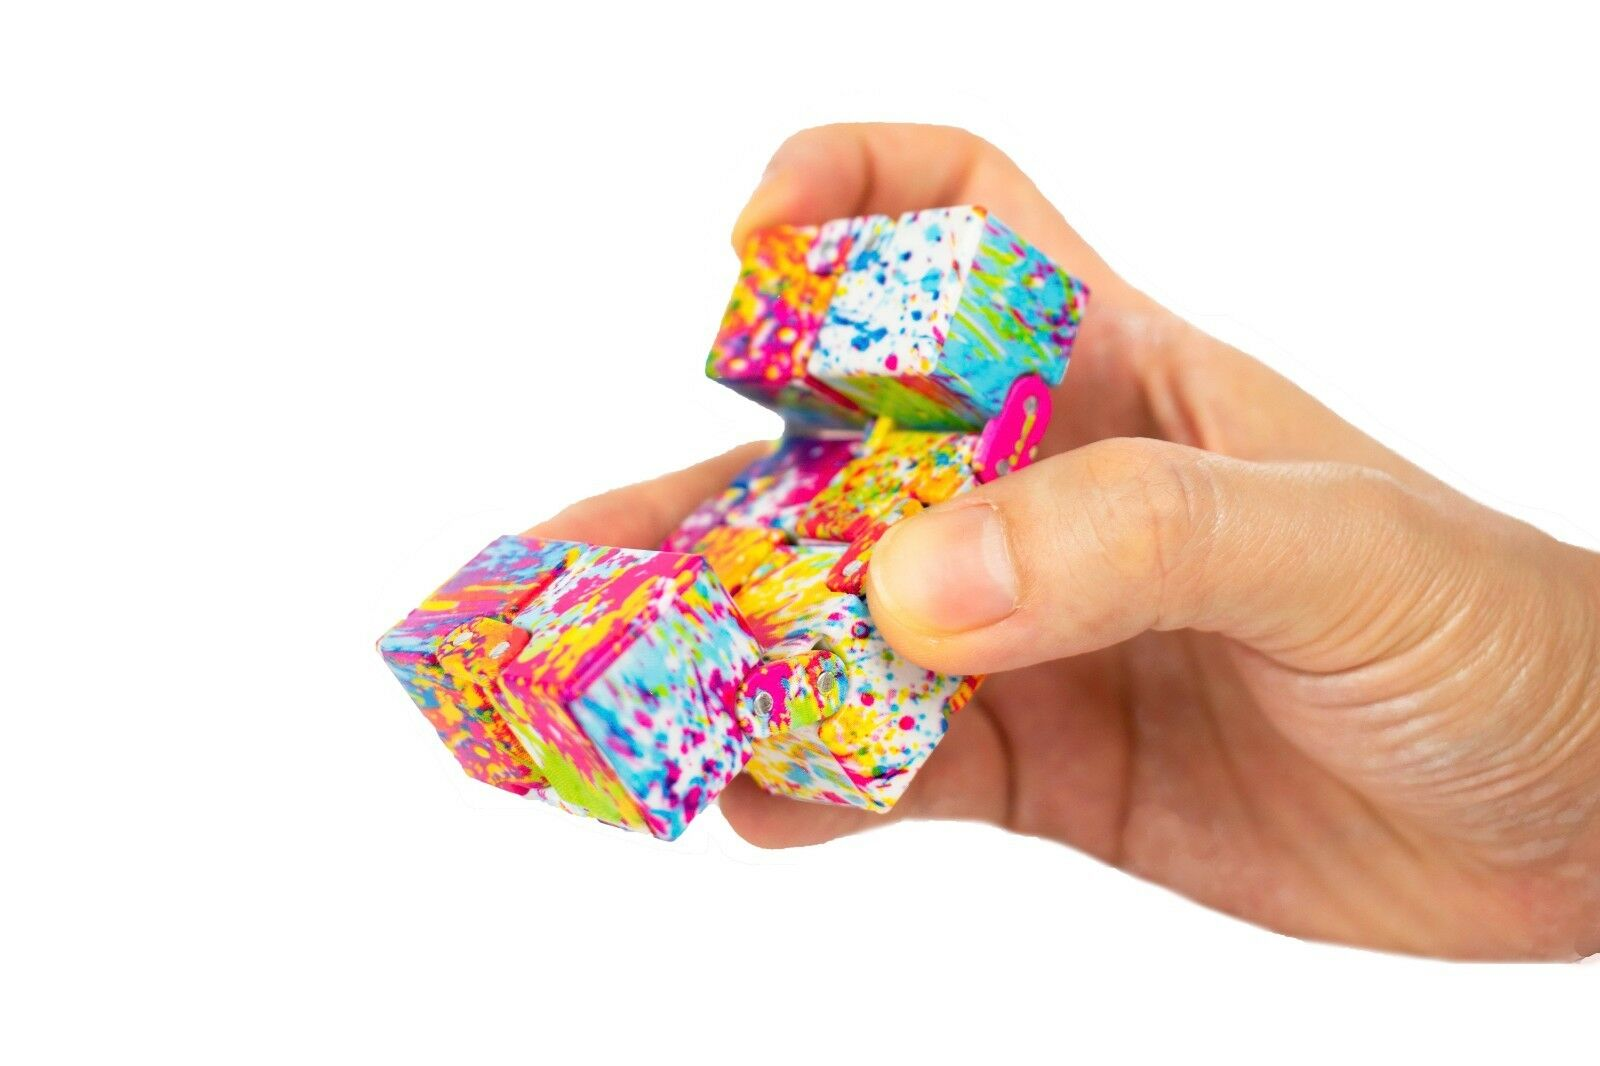 Sensory-Infinity-Cube-Stress-Fidget-Toys-for-Autism-Anxiety-Relief-Kids-Adult-UK thumbnail 16